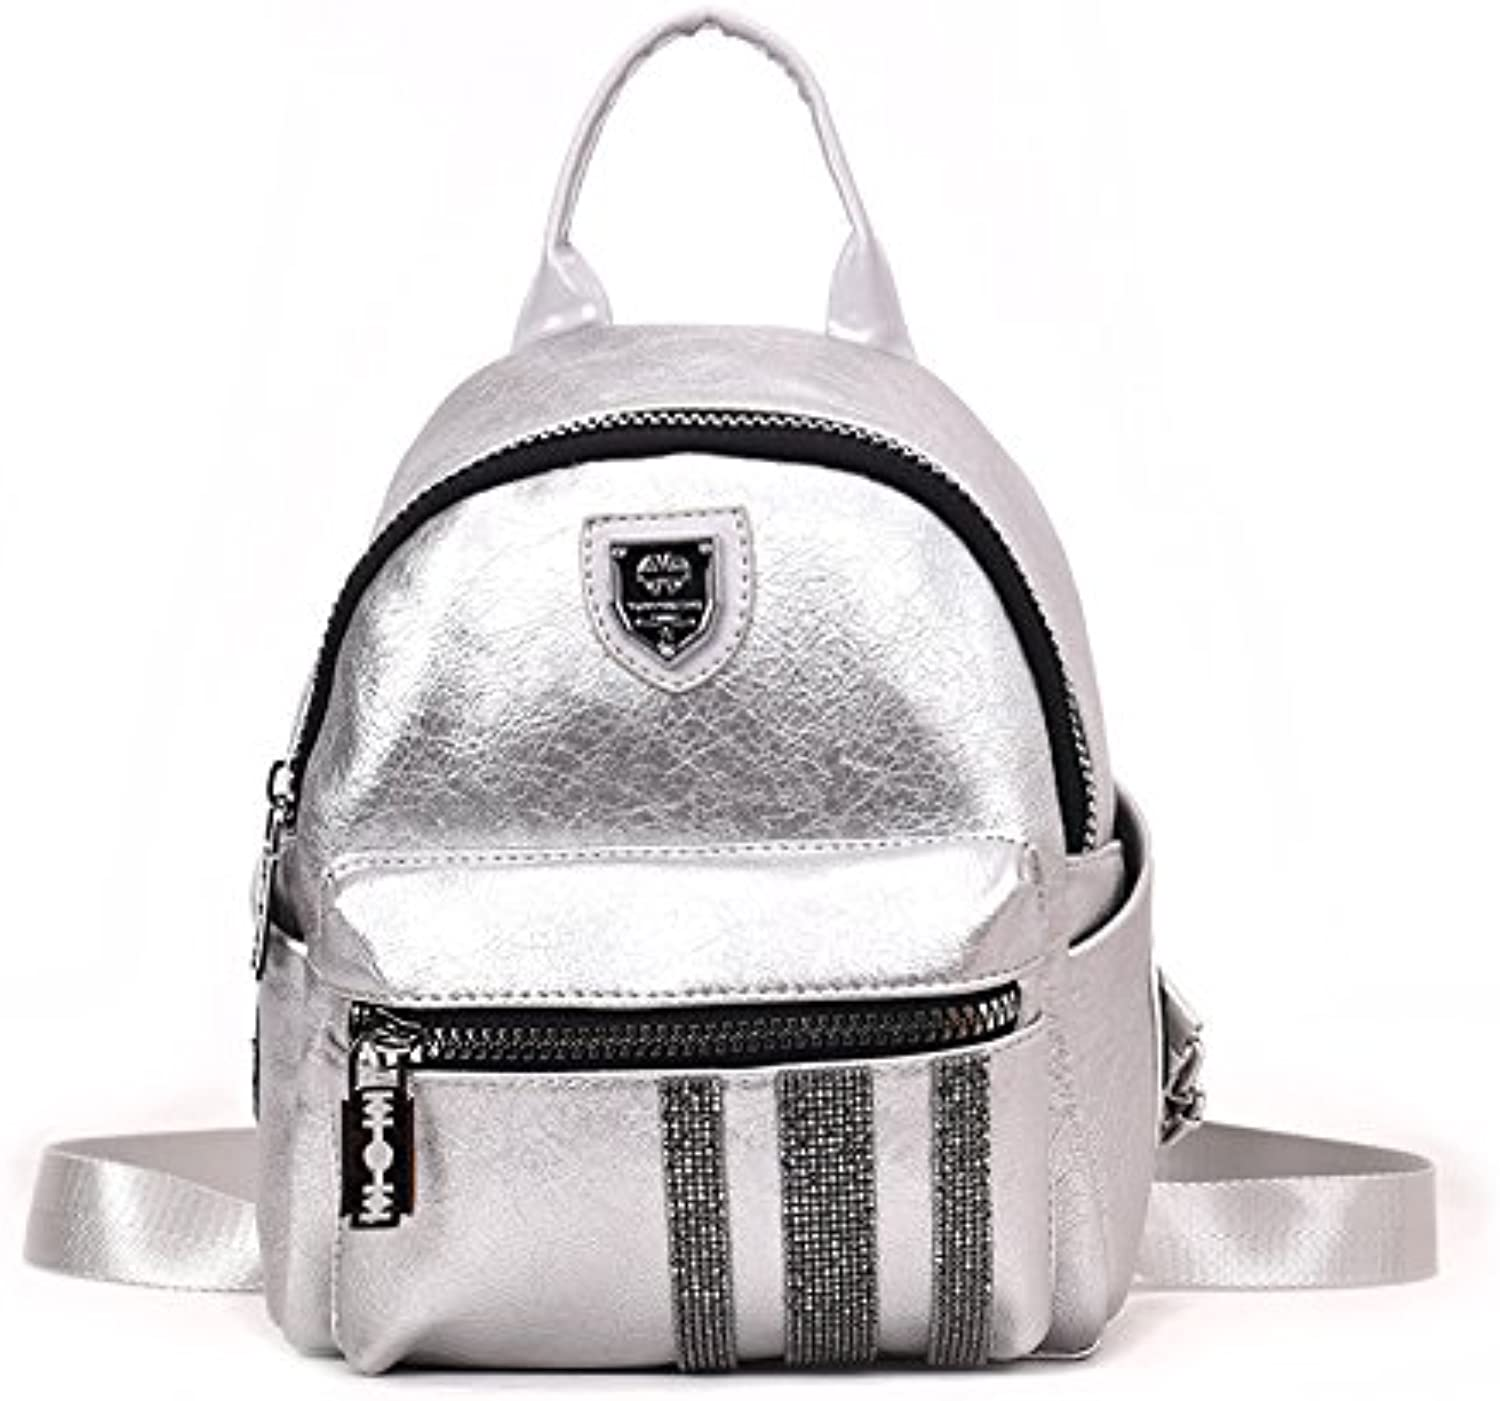 59aec2cc1c8b Casual Leather Backpack Women's Backpack Fashion Pu Leather Elephant ...